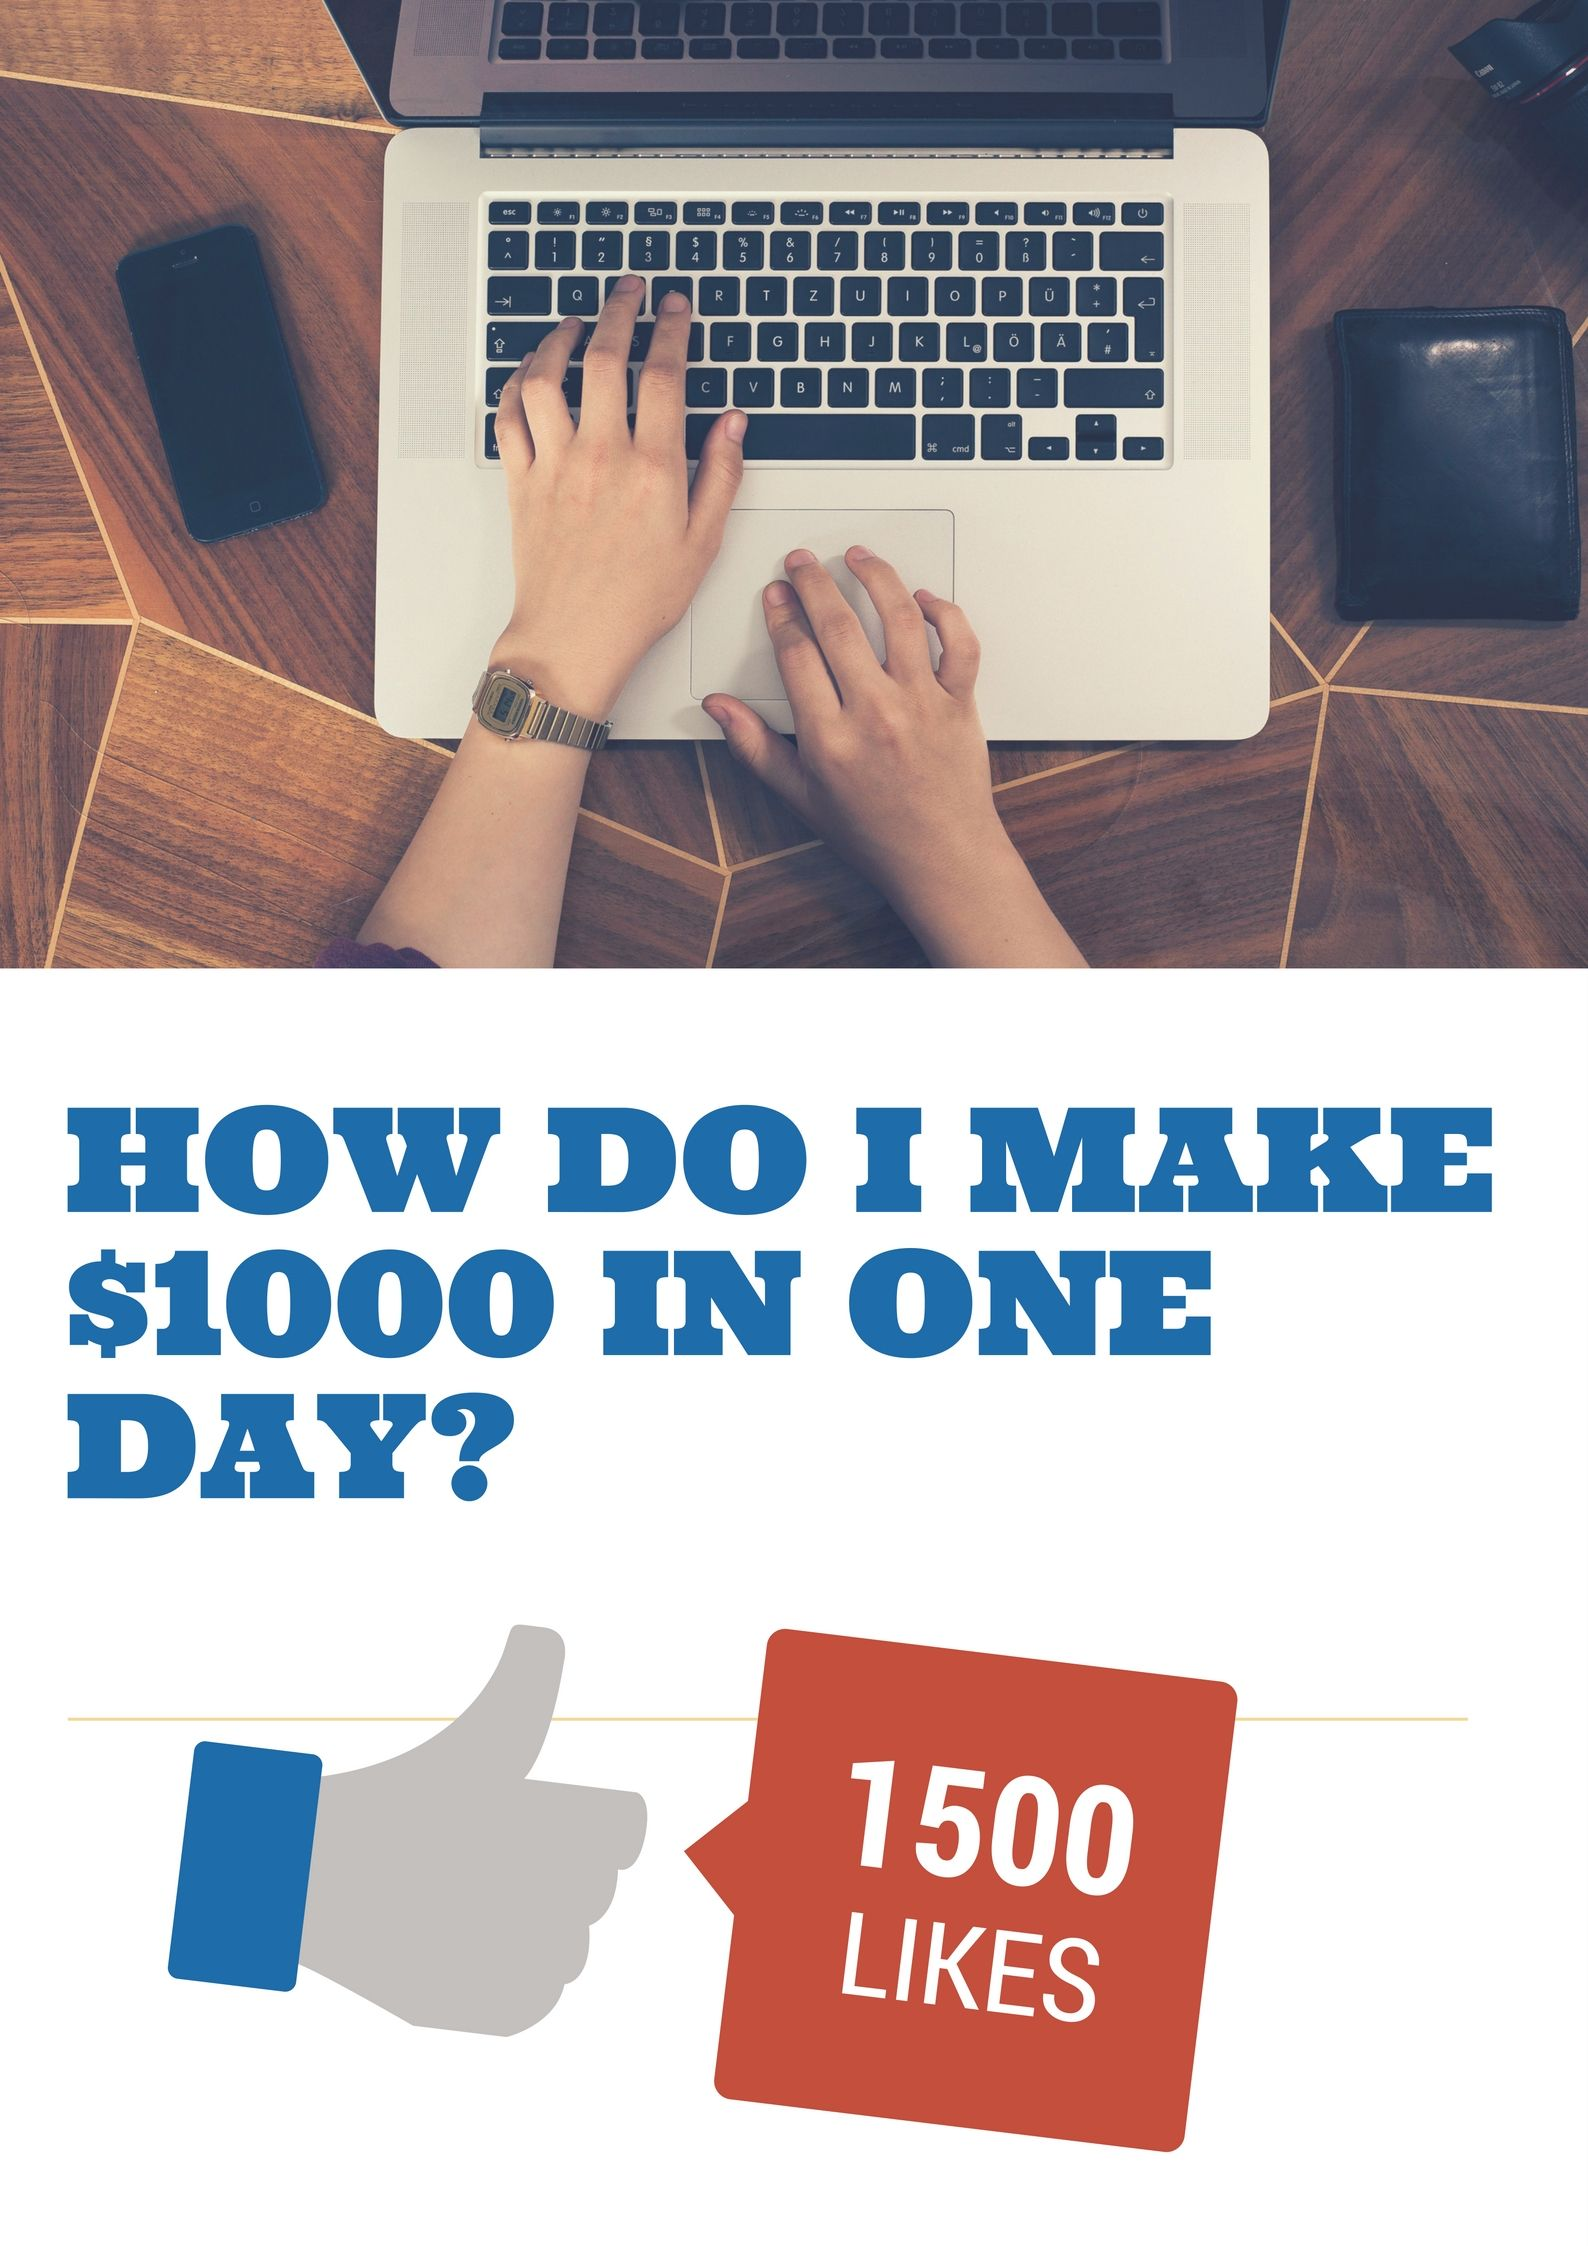 How do I make 1000 in one day?